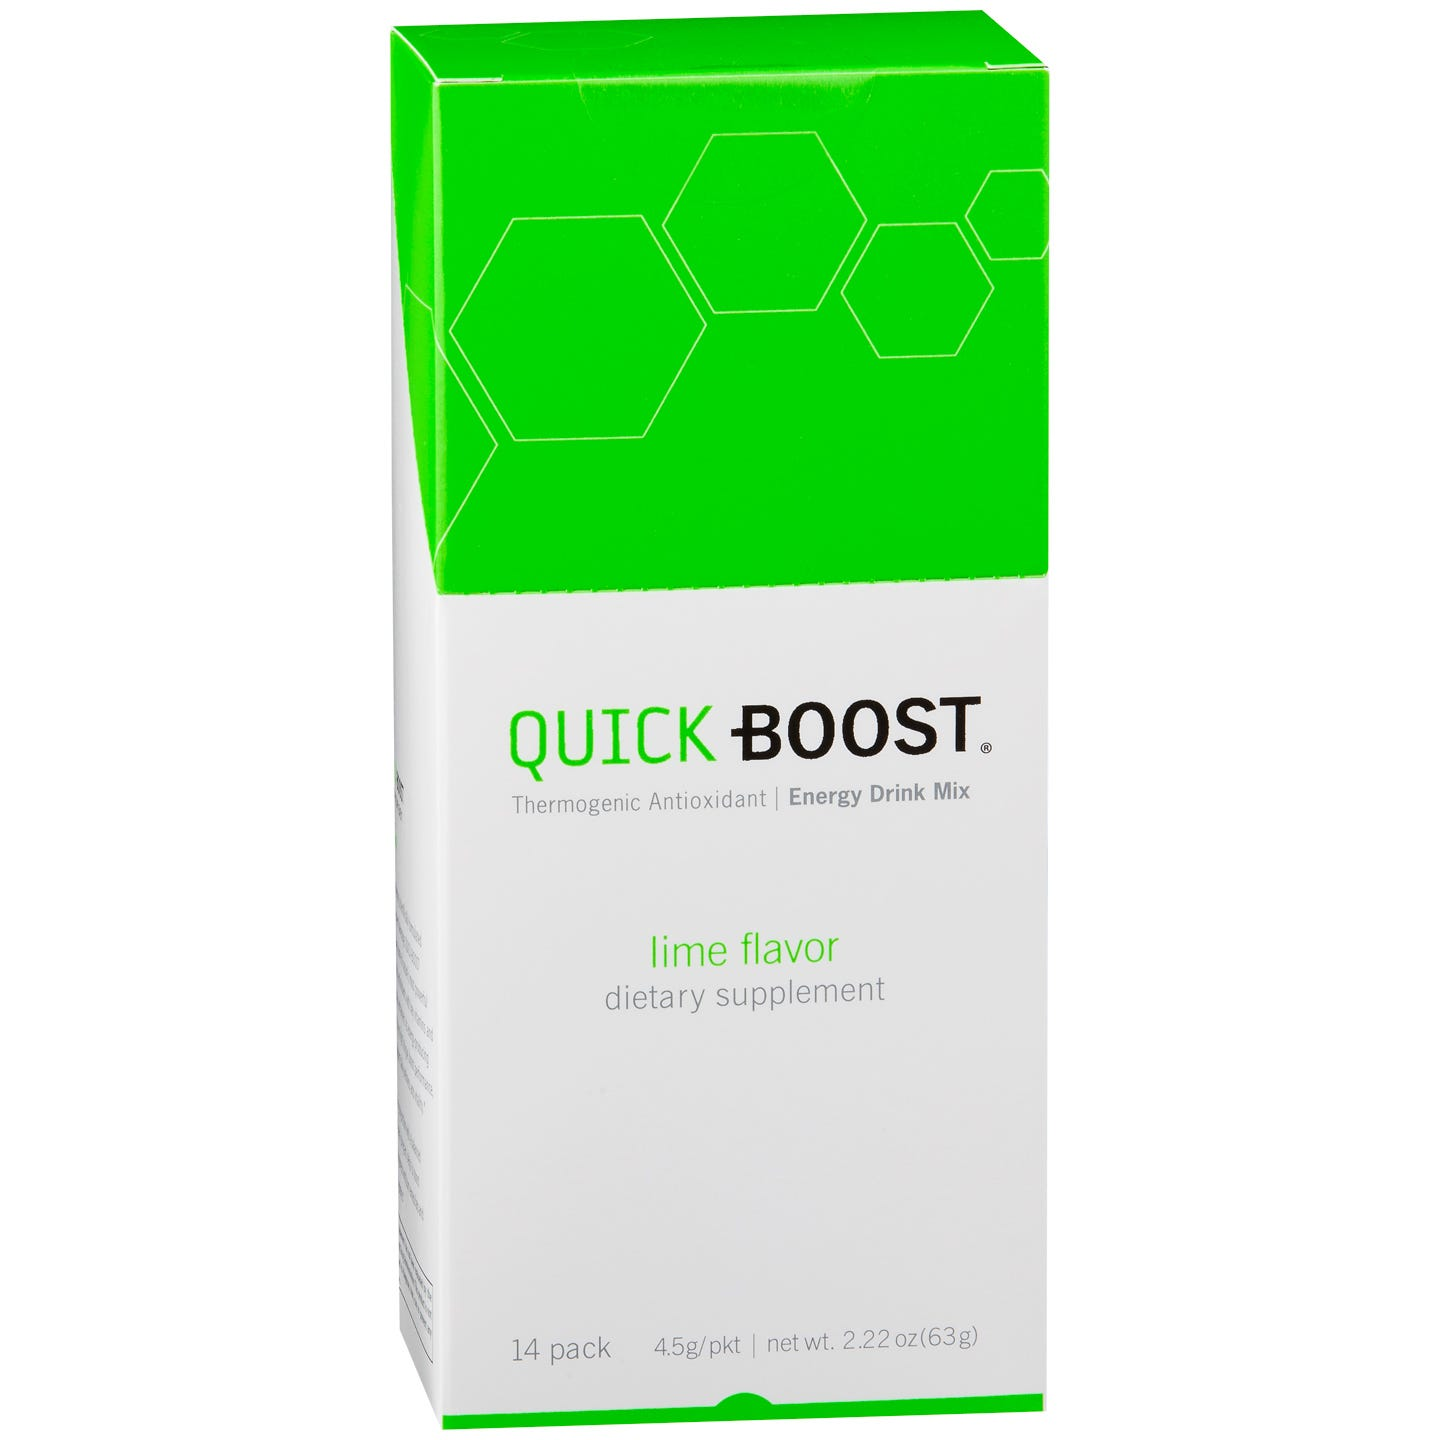 QUICK-BOOST Thermogenic Energy Drink Mix Lime (14 ct) - Totally Slim - Rapid Diet Weight Loss Products Shop